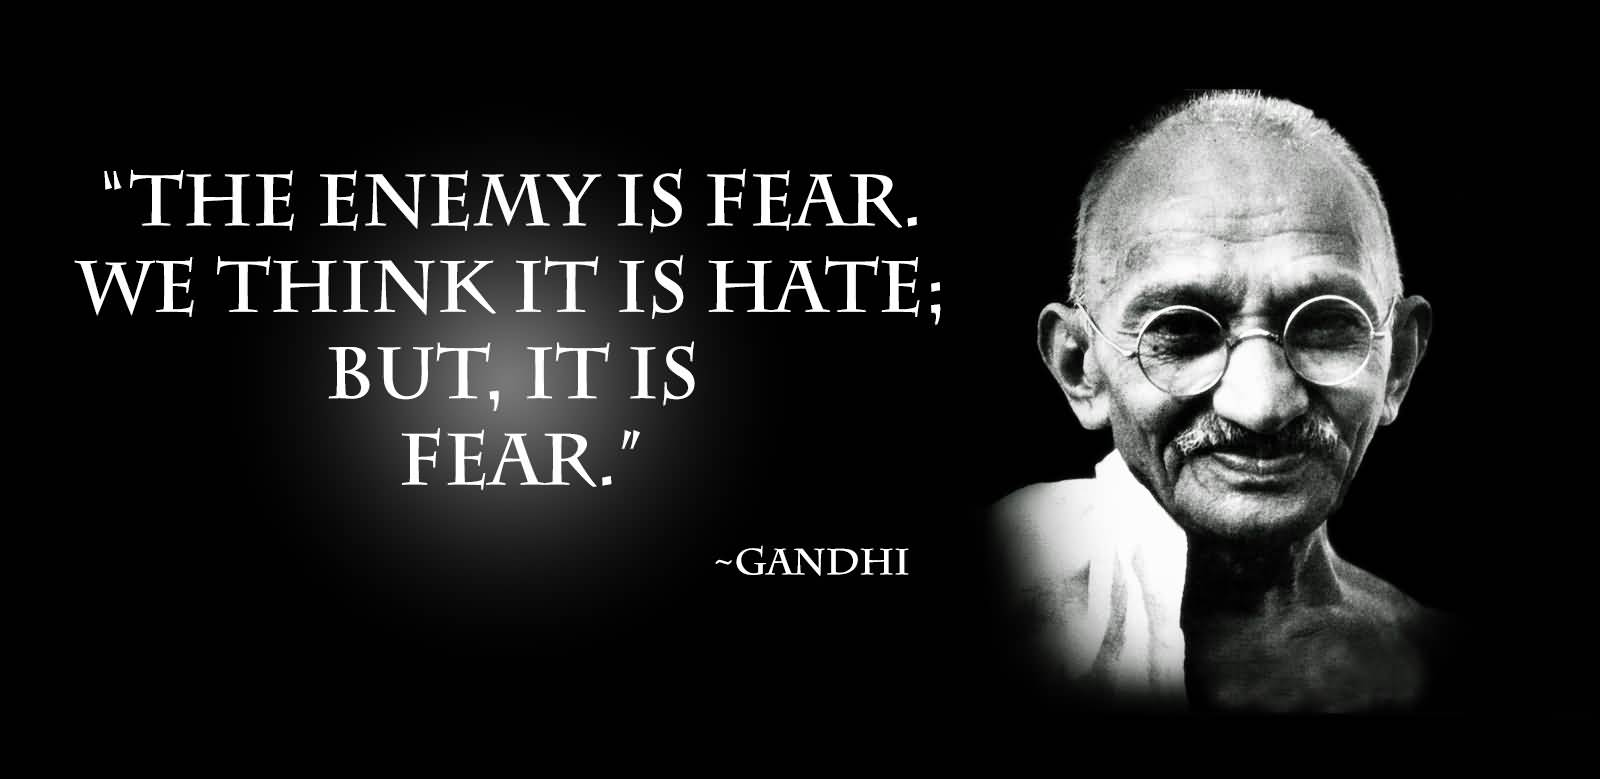 Famous Gandhi Quotes About Love, Life And Family